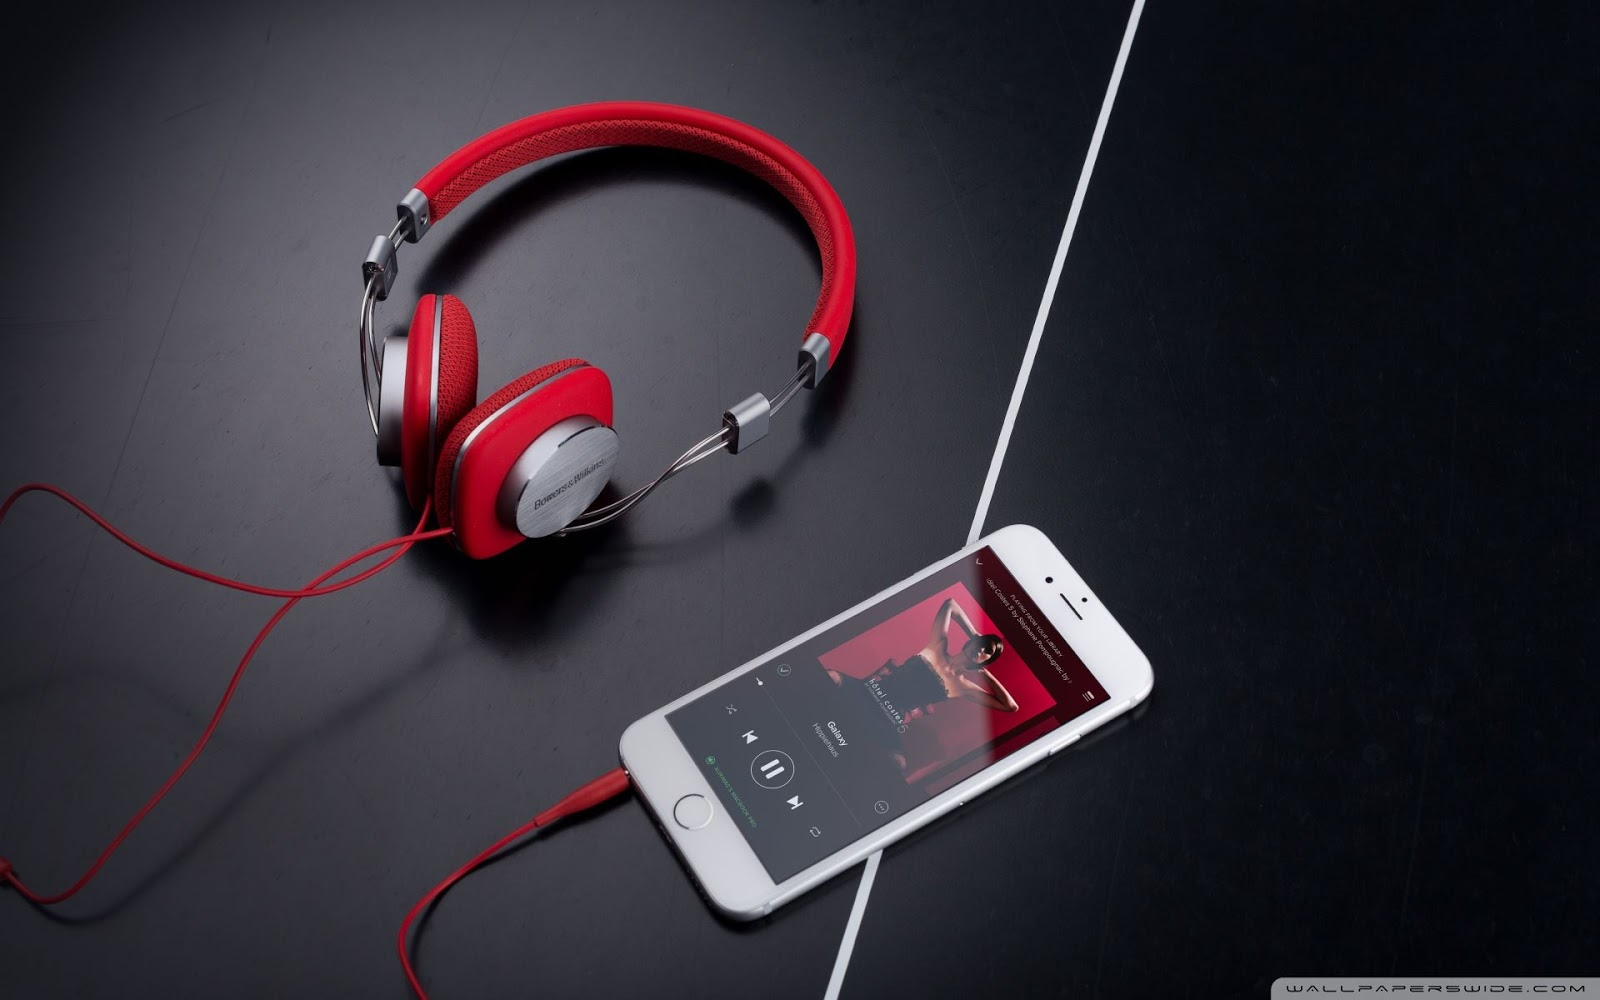 headphones-wallpapers-ultra-hd-1